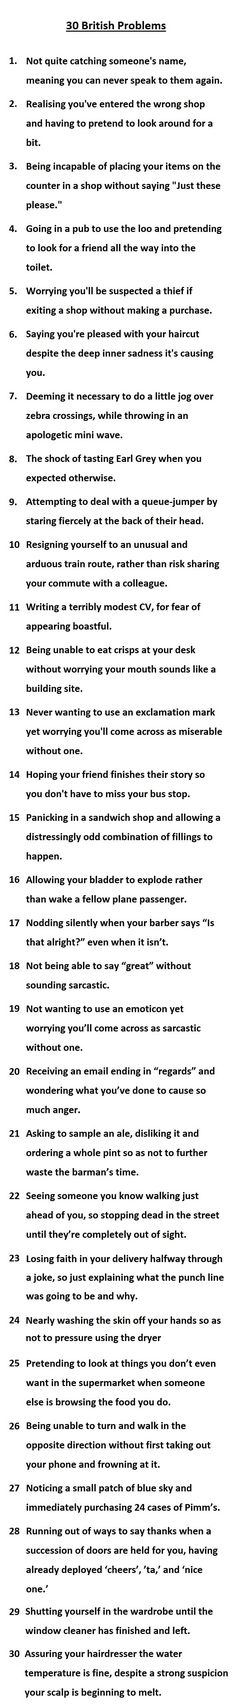 Yes I'm afraid I've done an awful lot of these, no 26 and 28 were accomplished on the way to work this afternoon.